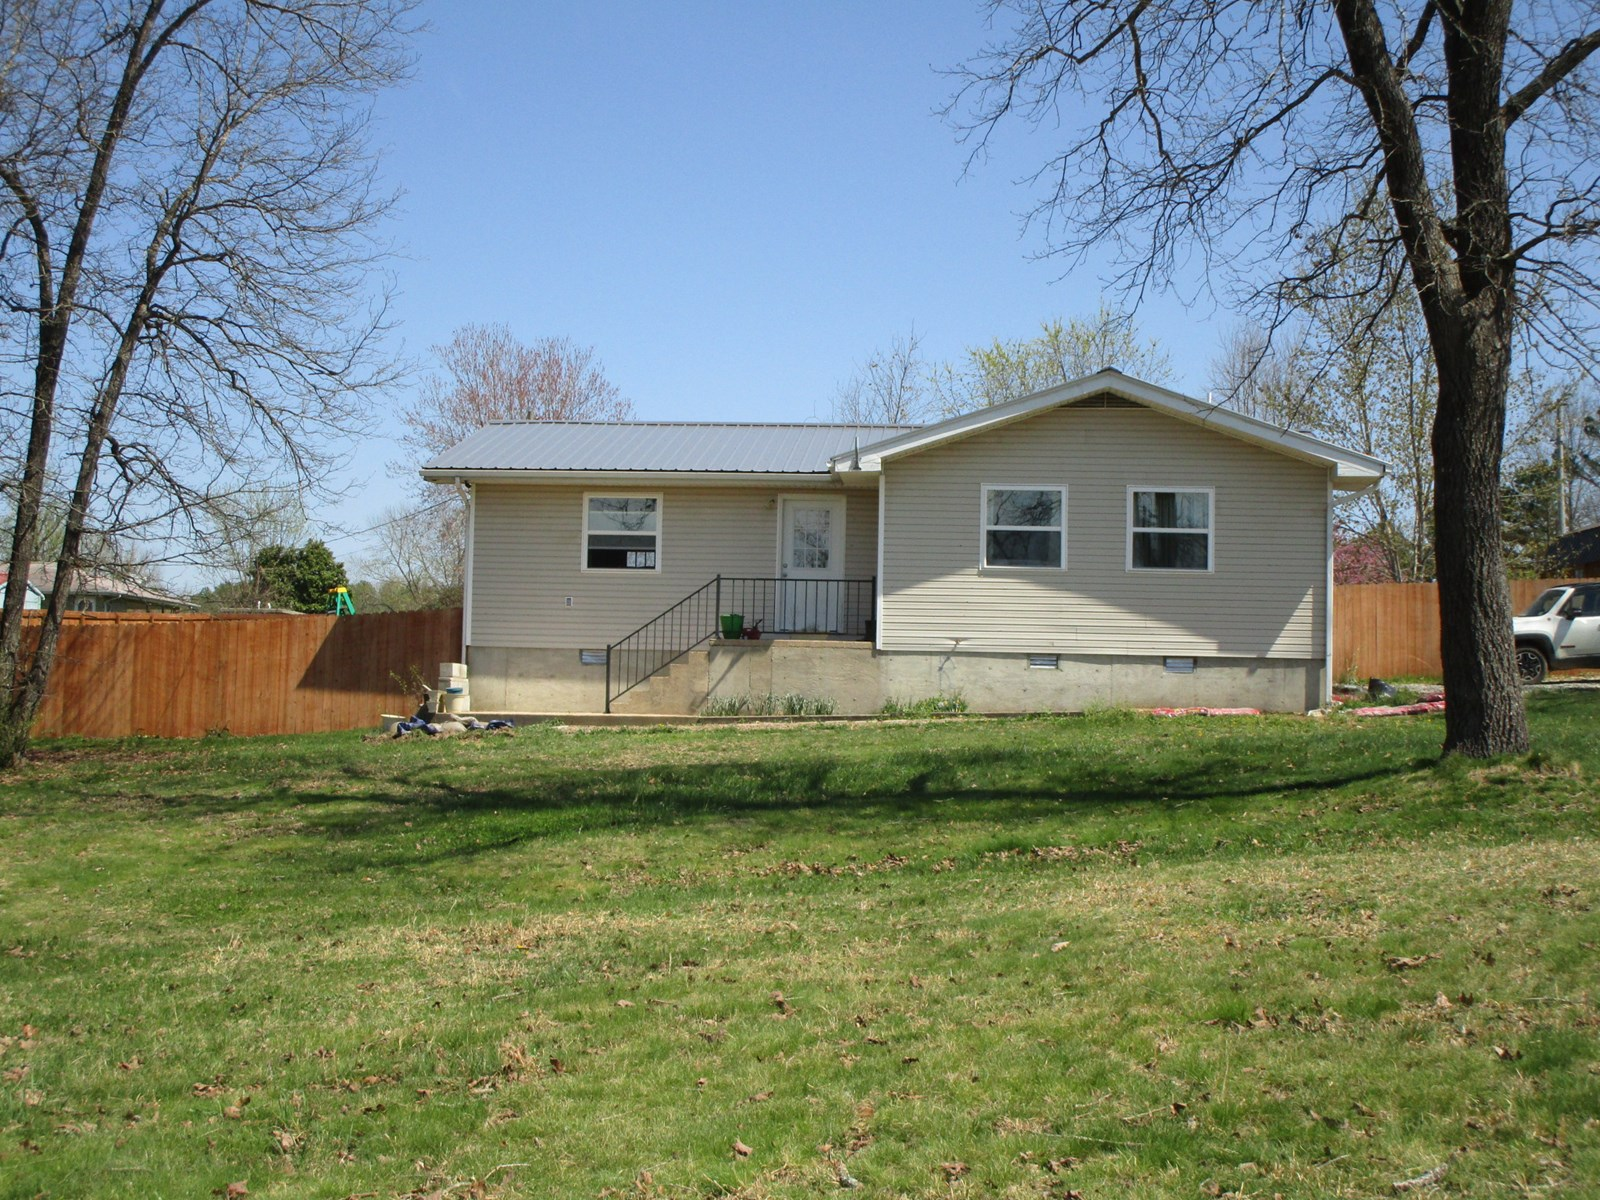 House in Town for Sale in Southern Missouri Ozarks